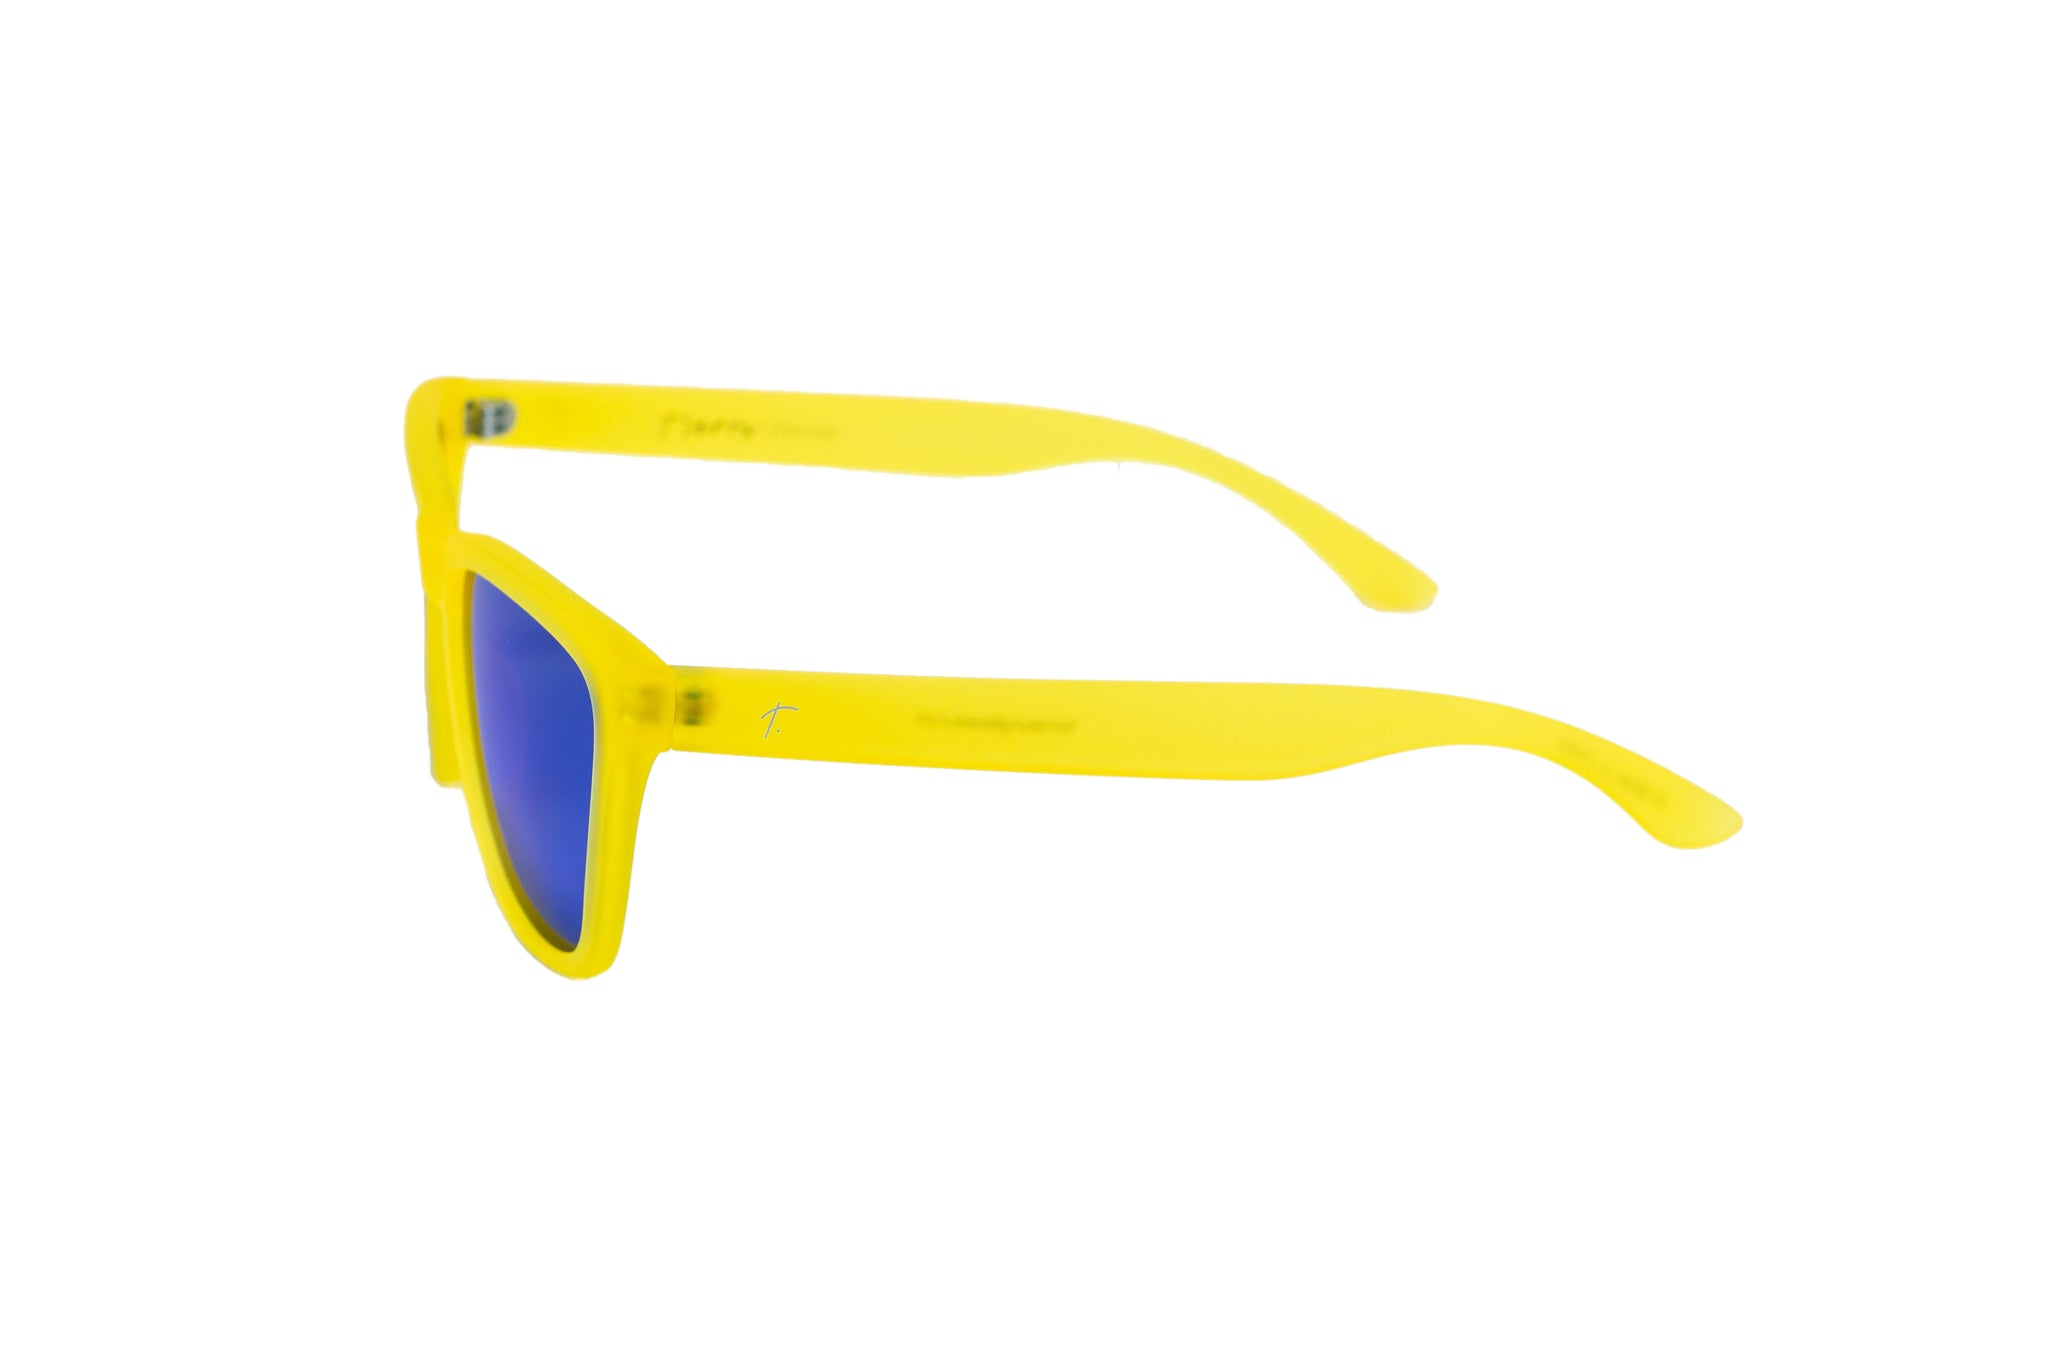 124a46180f3 womens running sunglasses. yellow  blue mirrored lens sunglasses. polarized  sunglasses. sunglasses for ...